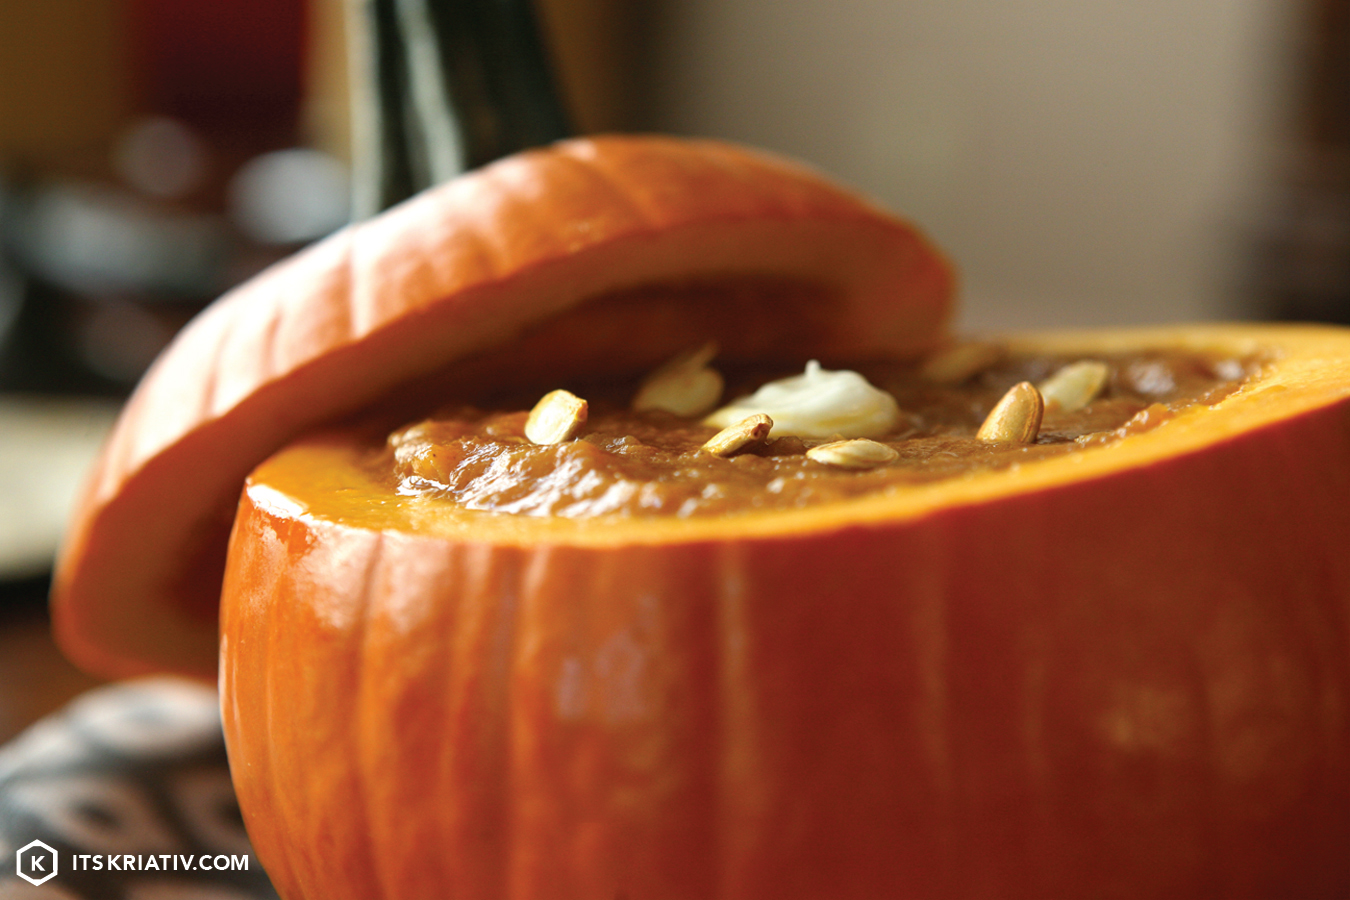 13_Nov_Food-Pumpkin-Soup-01a-06.jpg